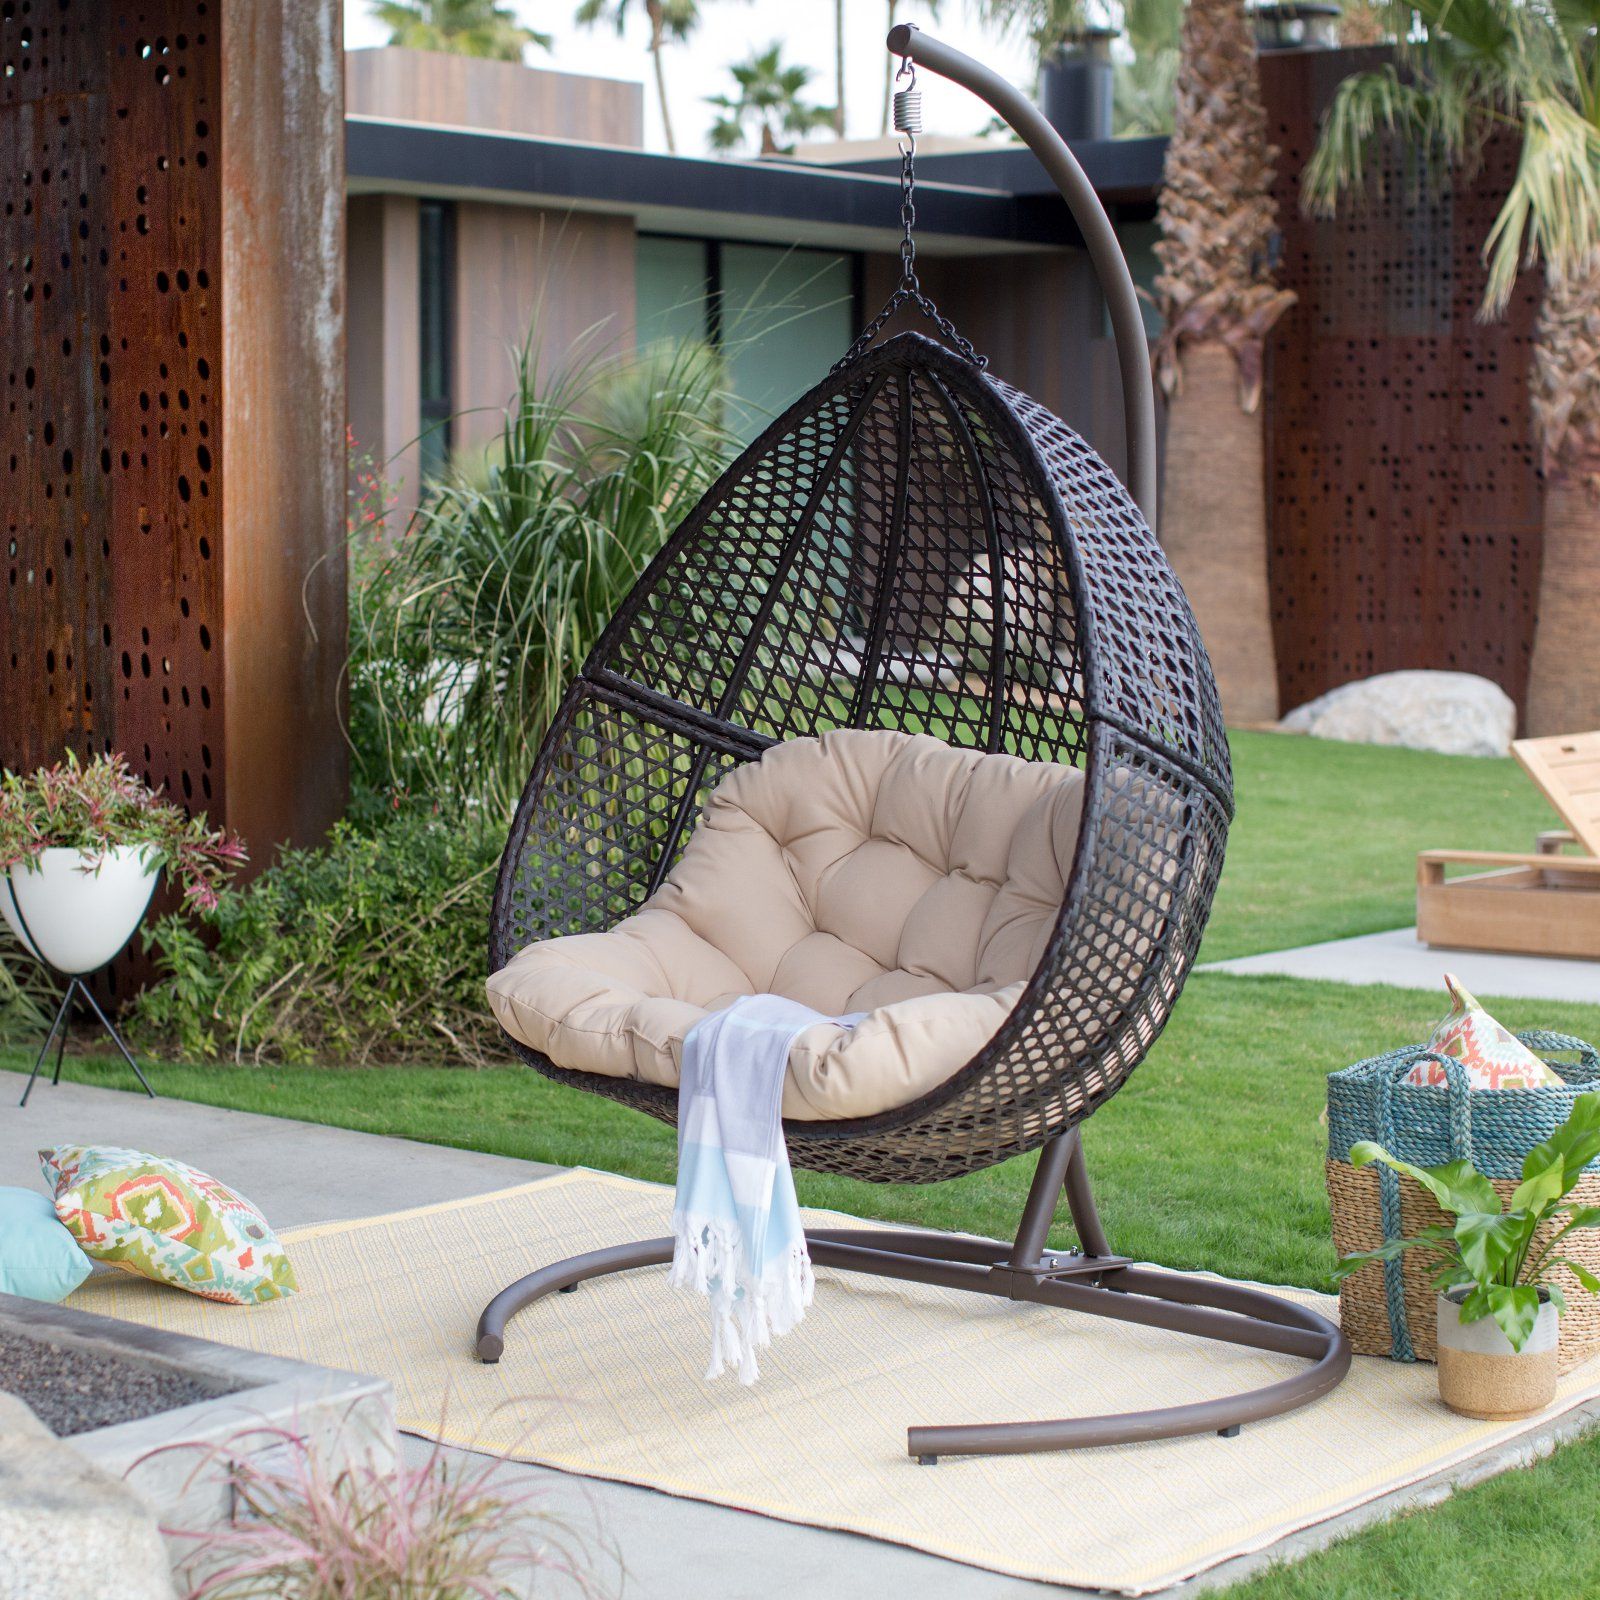 Hanging Outdoor Chairs Belham Living Samos Resin Wicker Hanging Double Egg Chair With Cushion And Stand